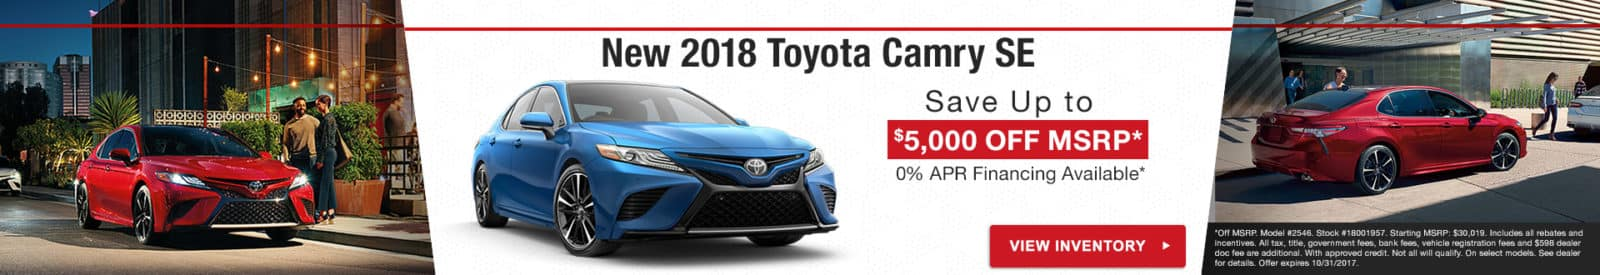 Save up to $5,000 off a new 2018 Toyota Camry, with 0% APR available in Rocky Mount NC